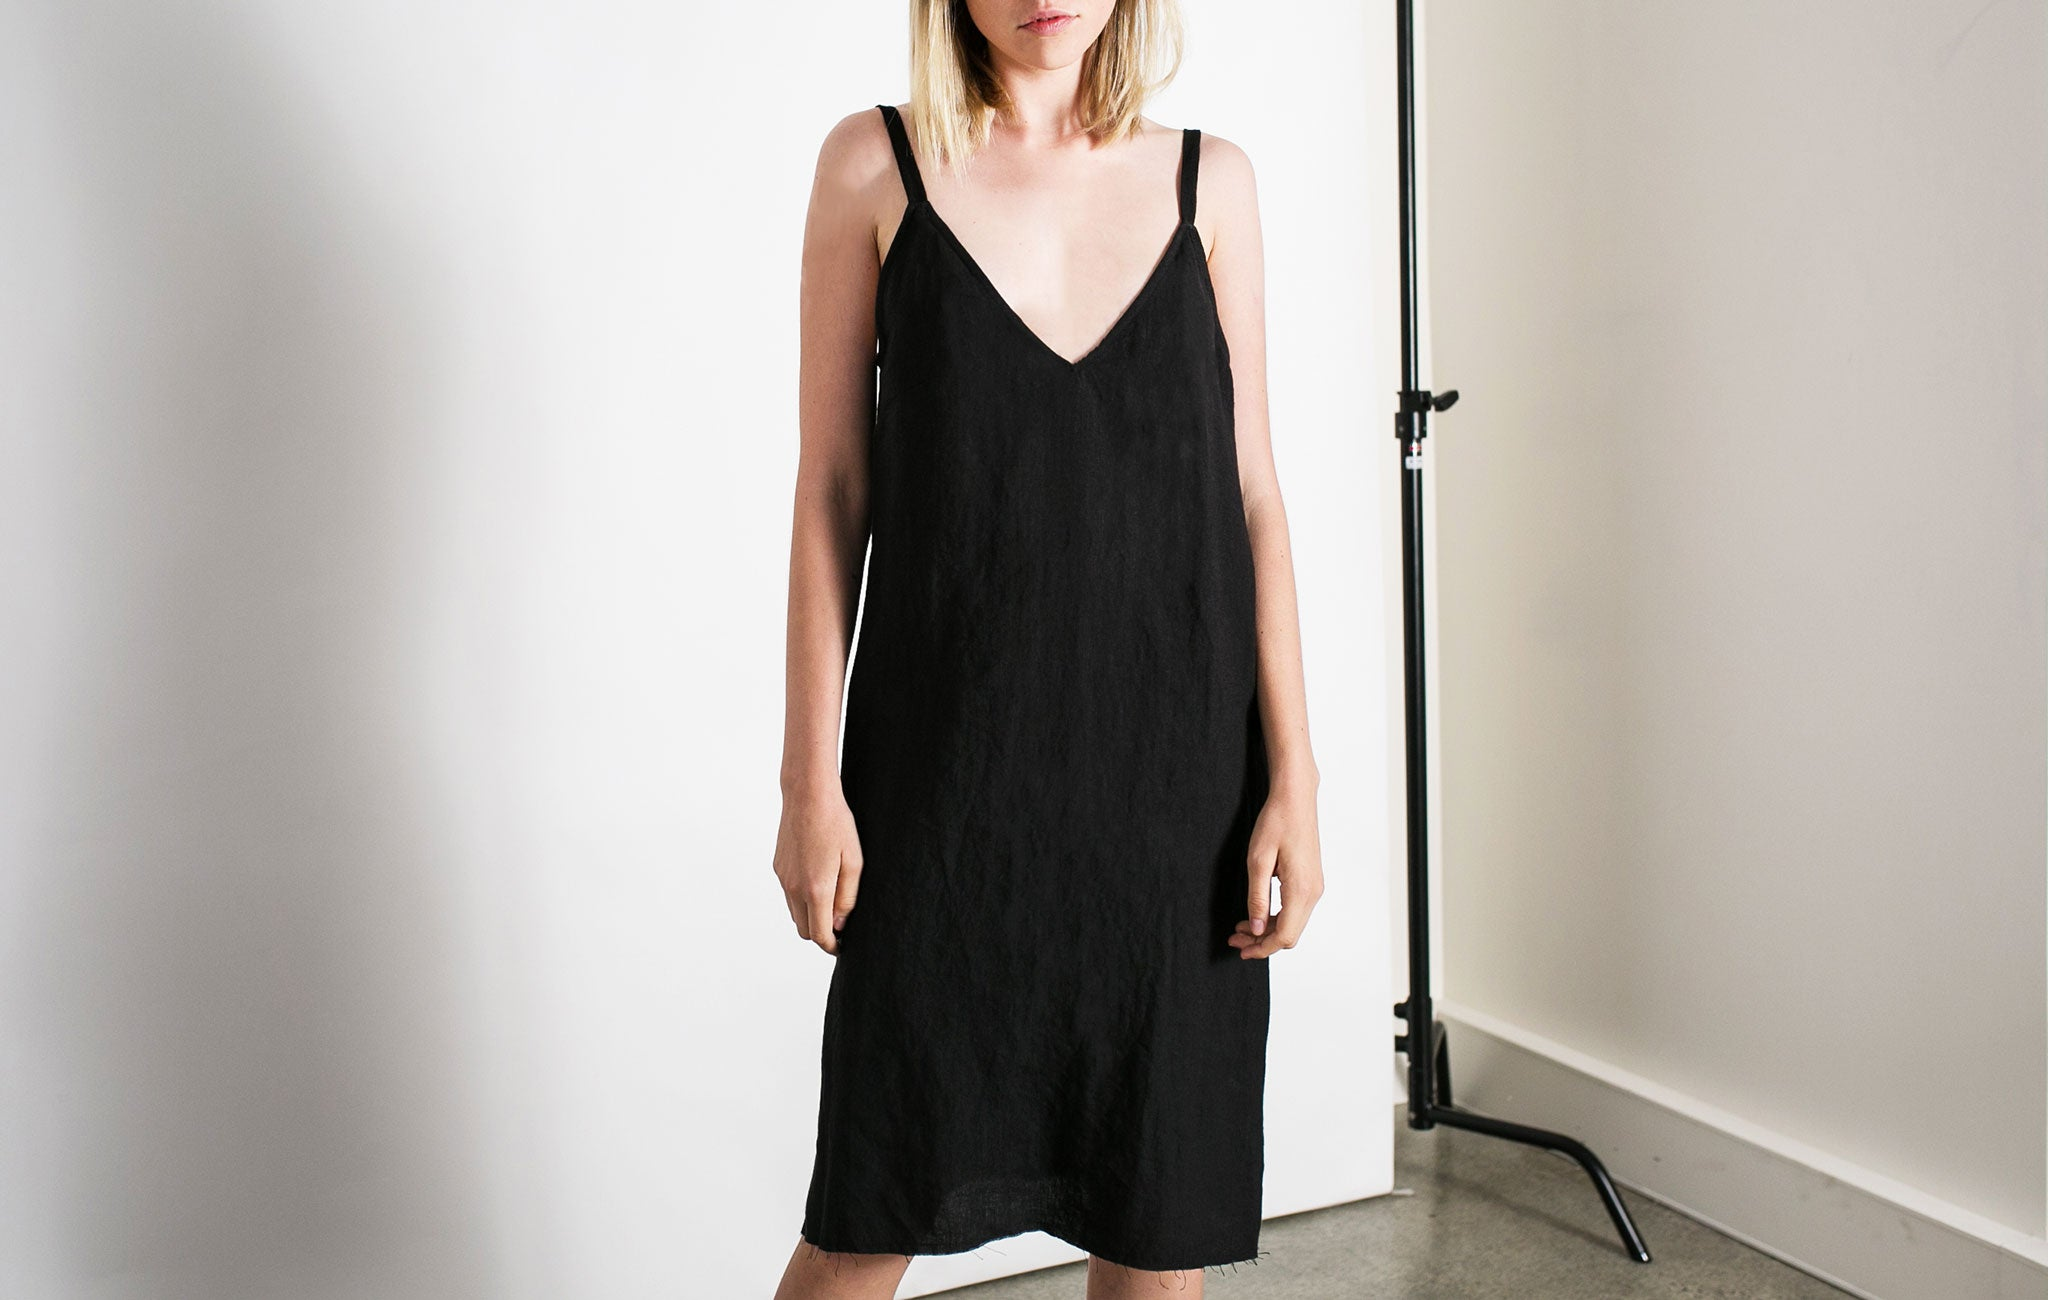 Matin V neck linen dress in black from The UNDONE